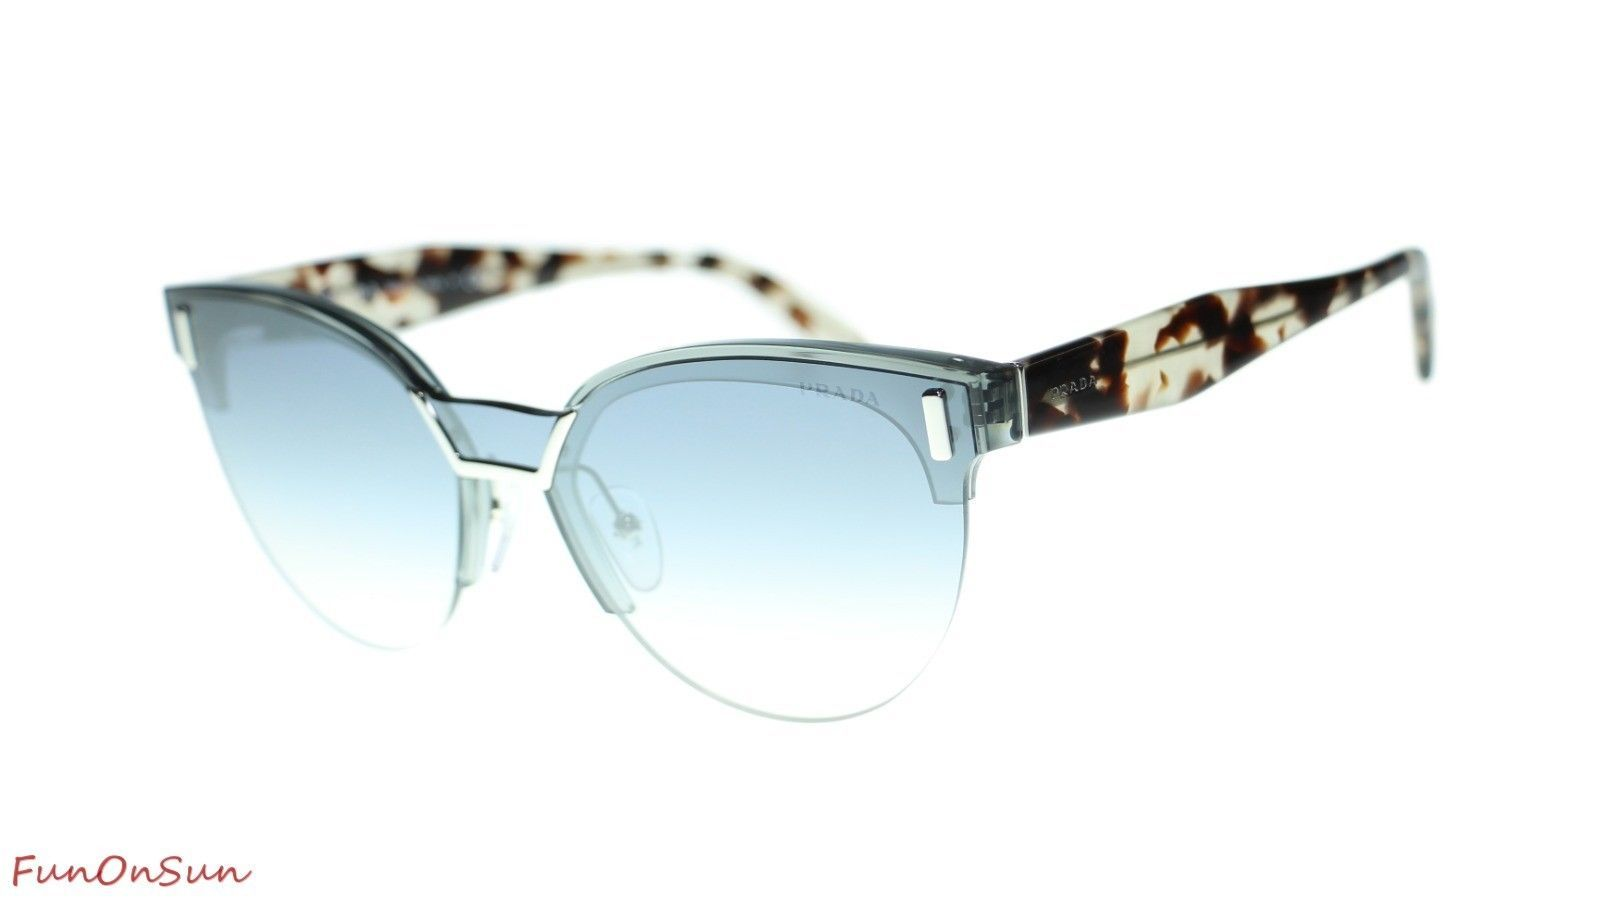 Prada Sunglasses PR04US VIP5R0 Transparent Grey/Gradient Blue Mirror Silver Lens